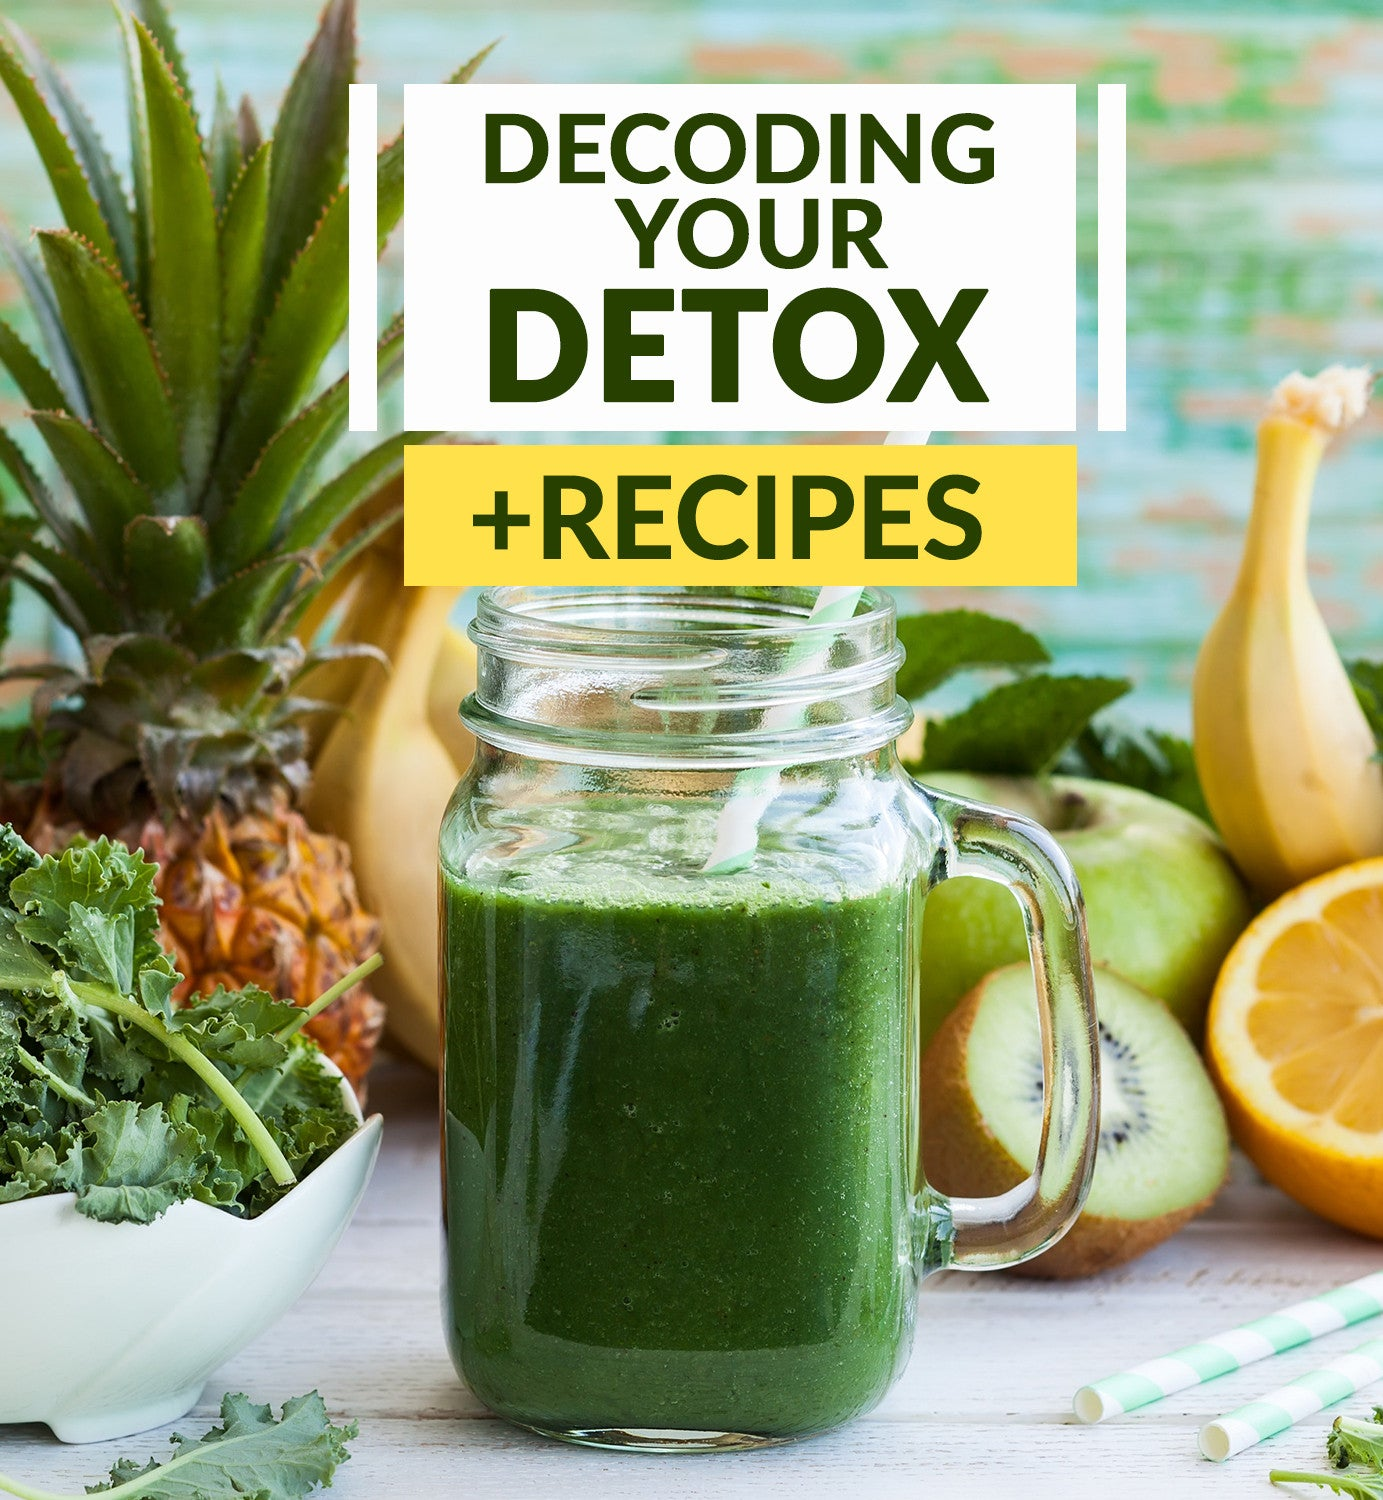 Decoding Your Detox - Tips, Tricks and Recipes Included